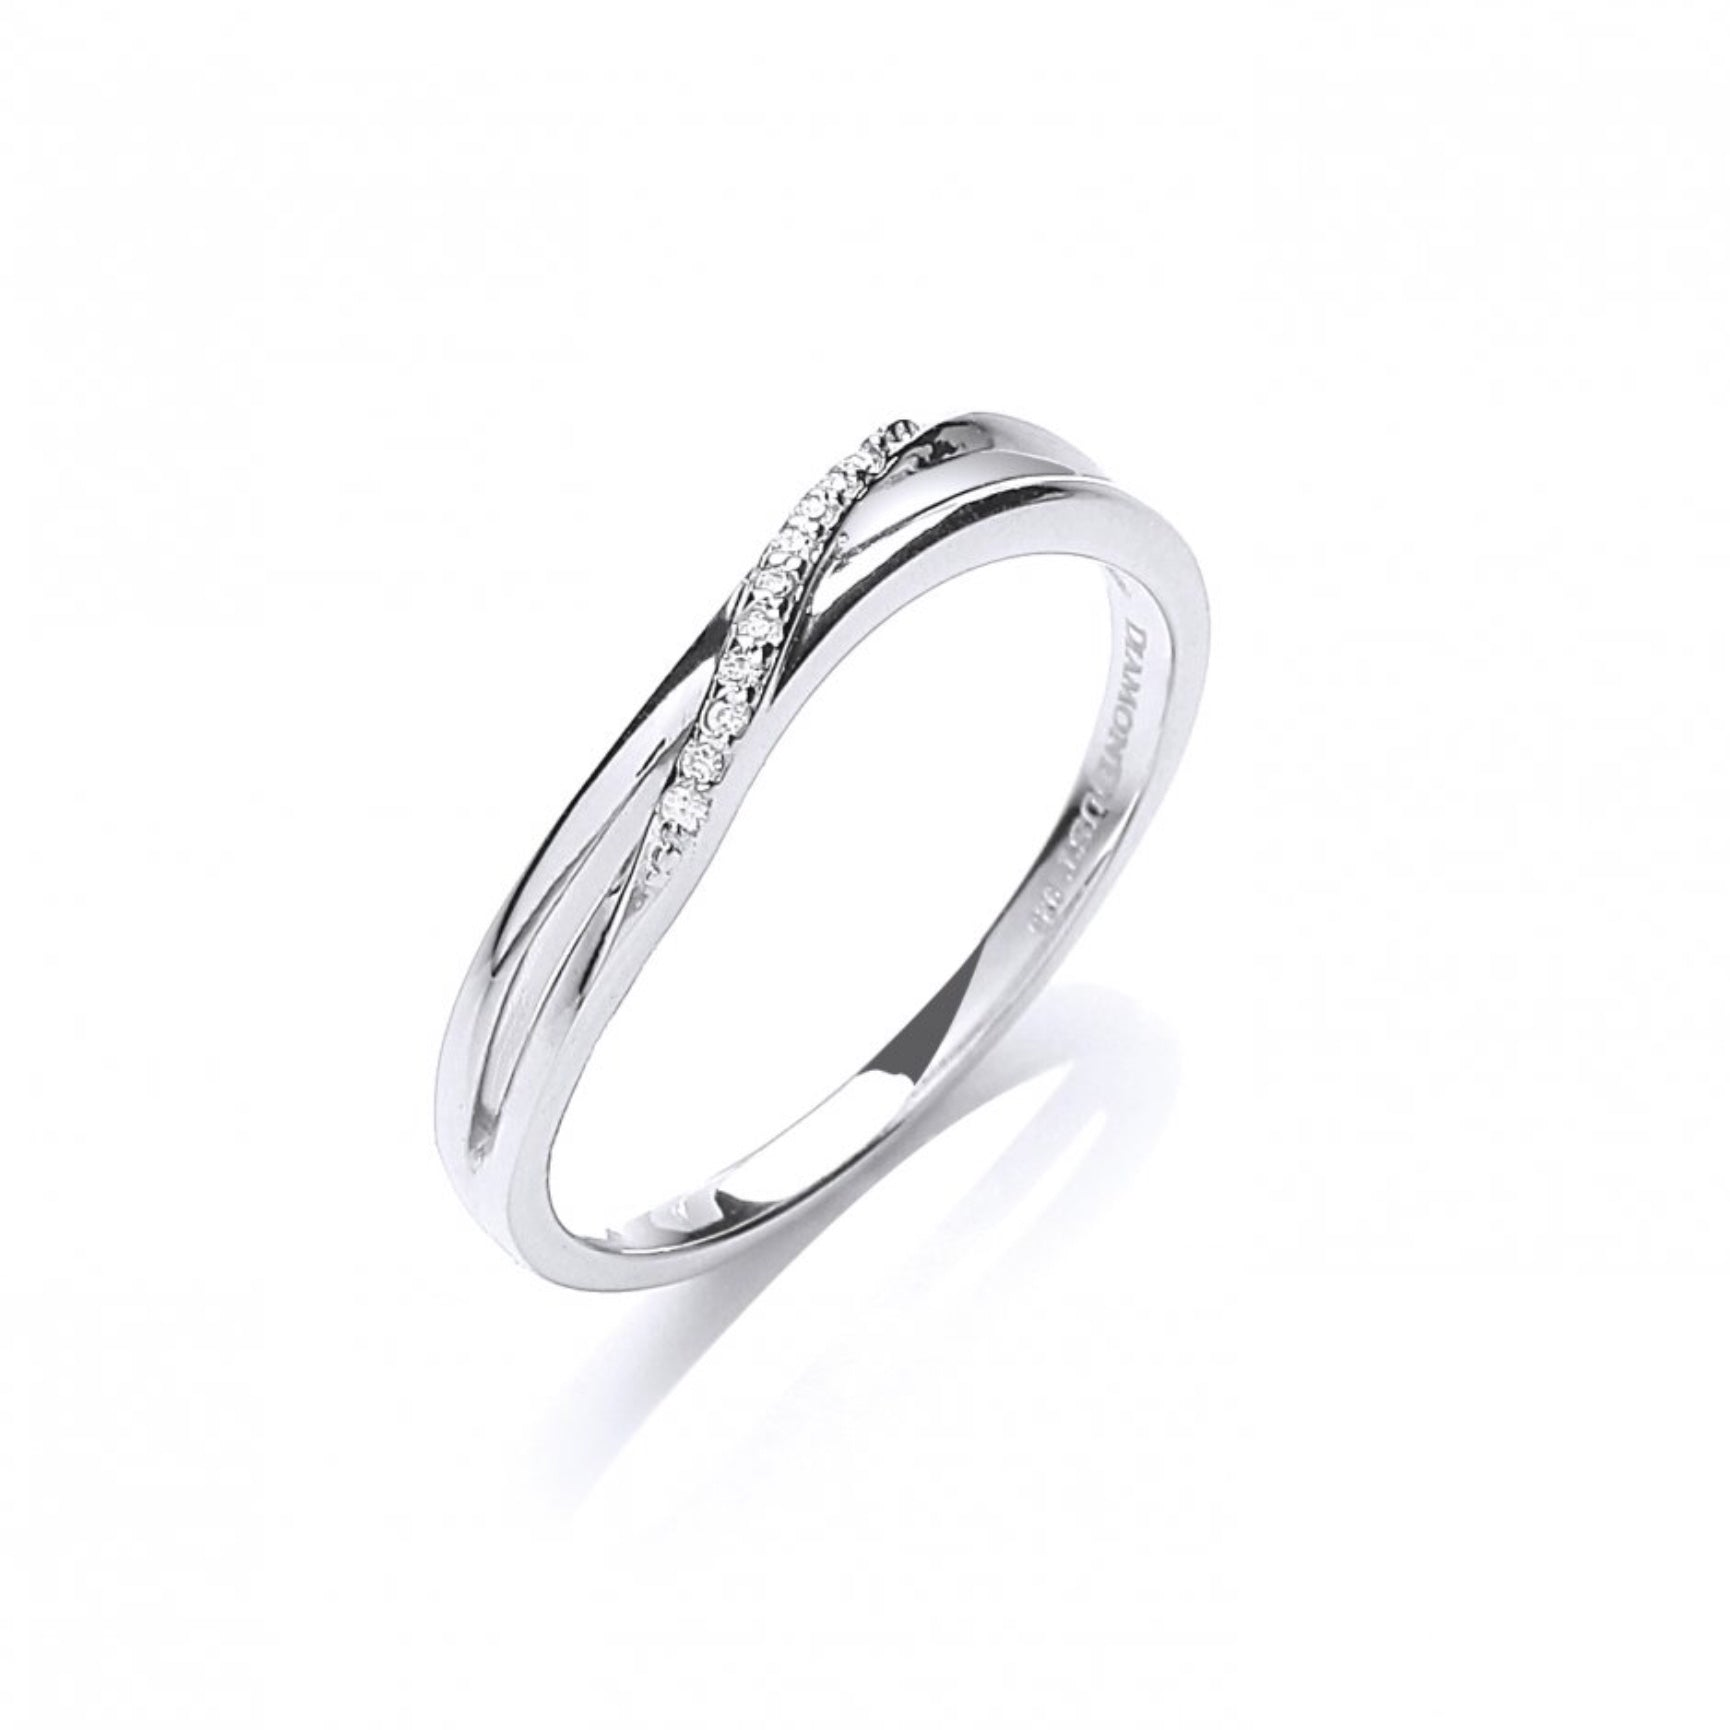 David Deyong CZ Twisted Sterling Silver Pave Set Ring